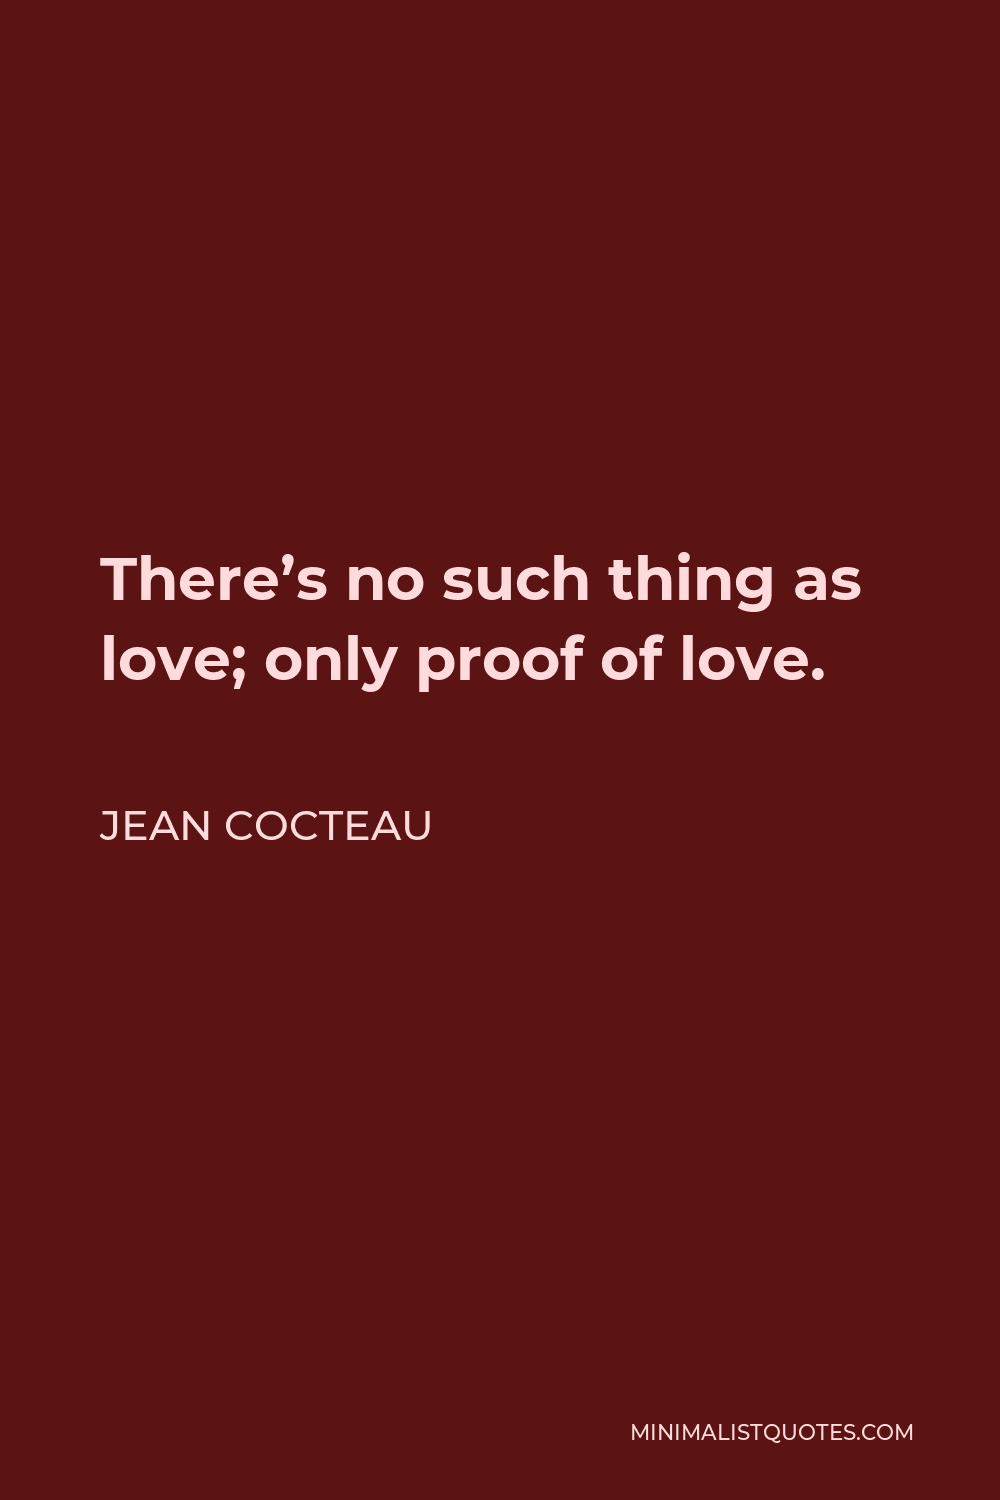 Jean Cocteau Quote - There's no such thing as love; only proof of love.